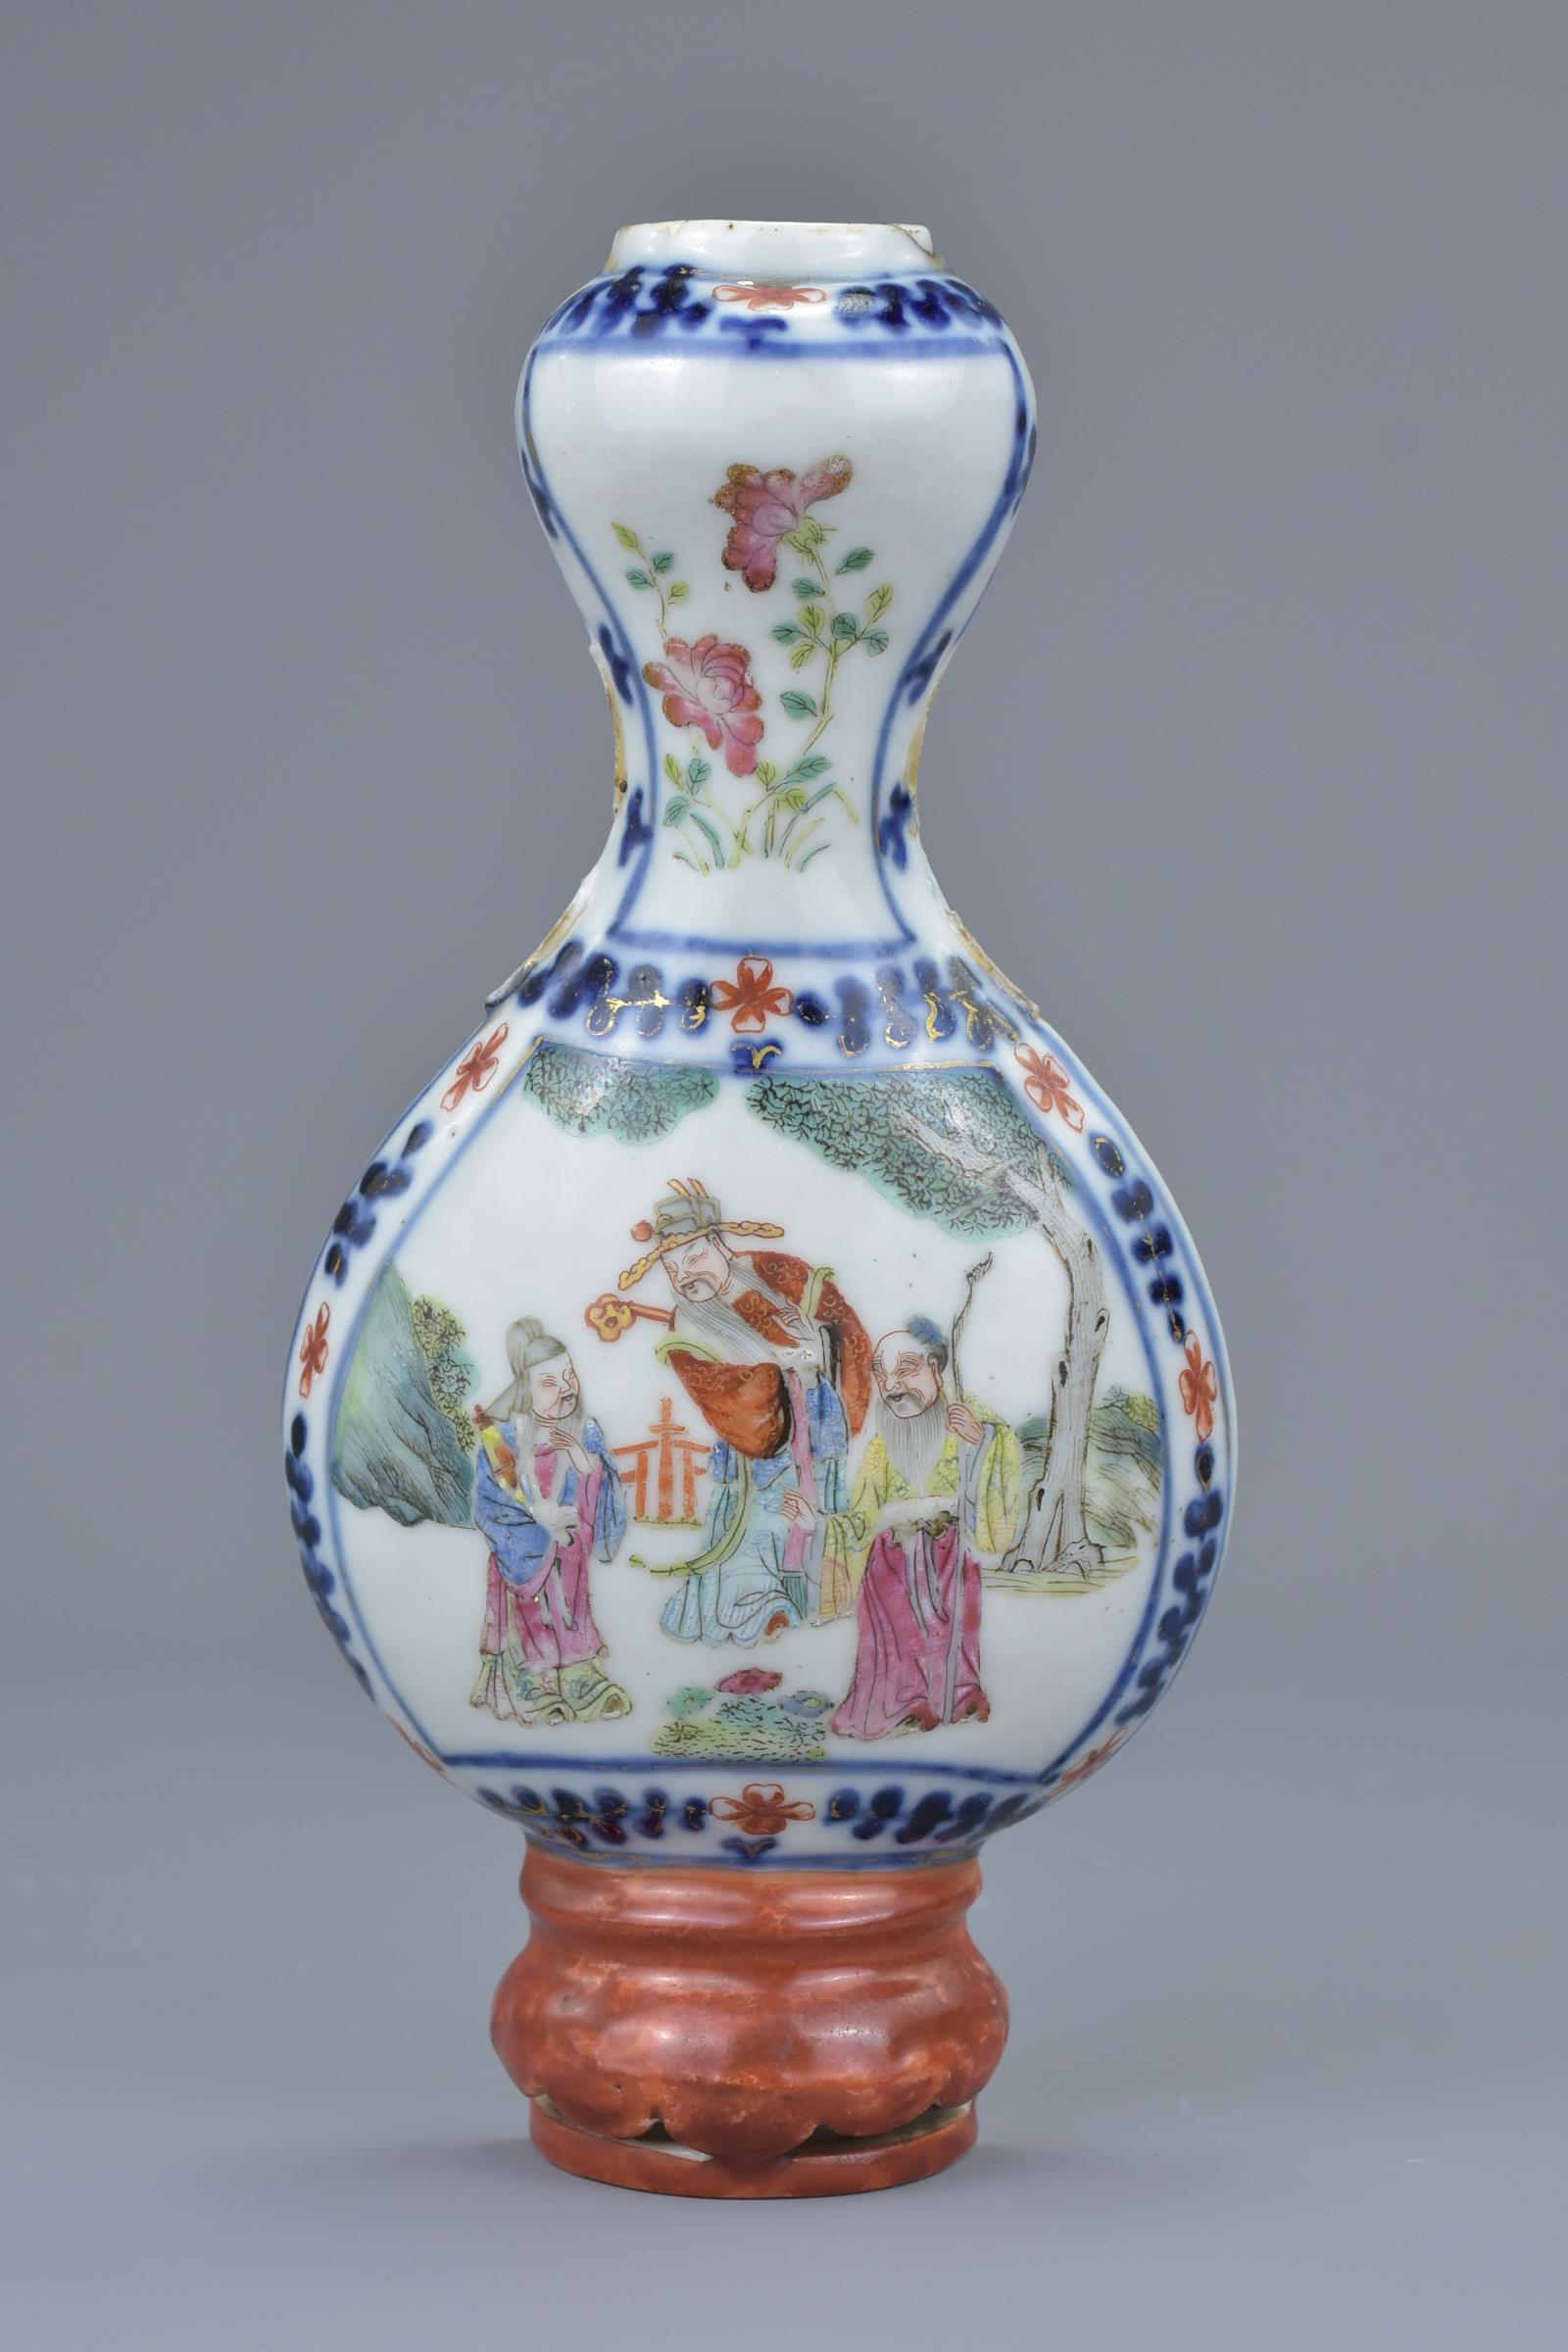 Lot 31 - A Chinese 19th C. Famille rose porcelain wall vase decorated with figures